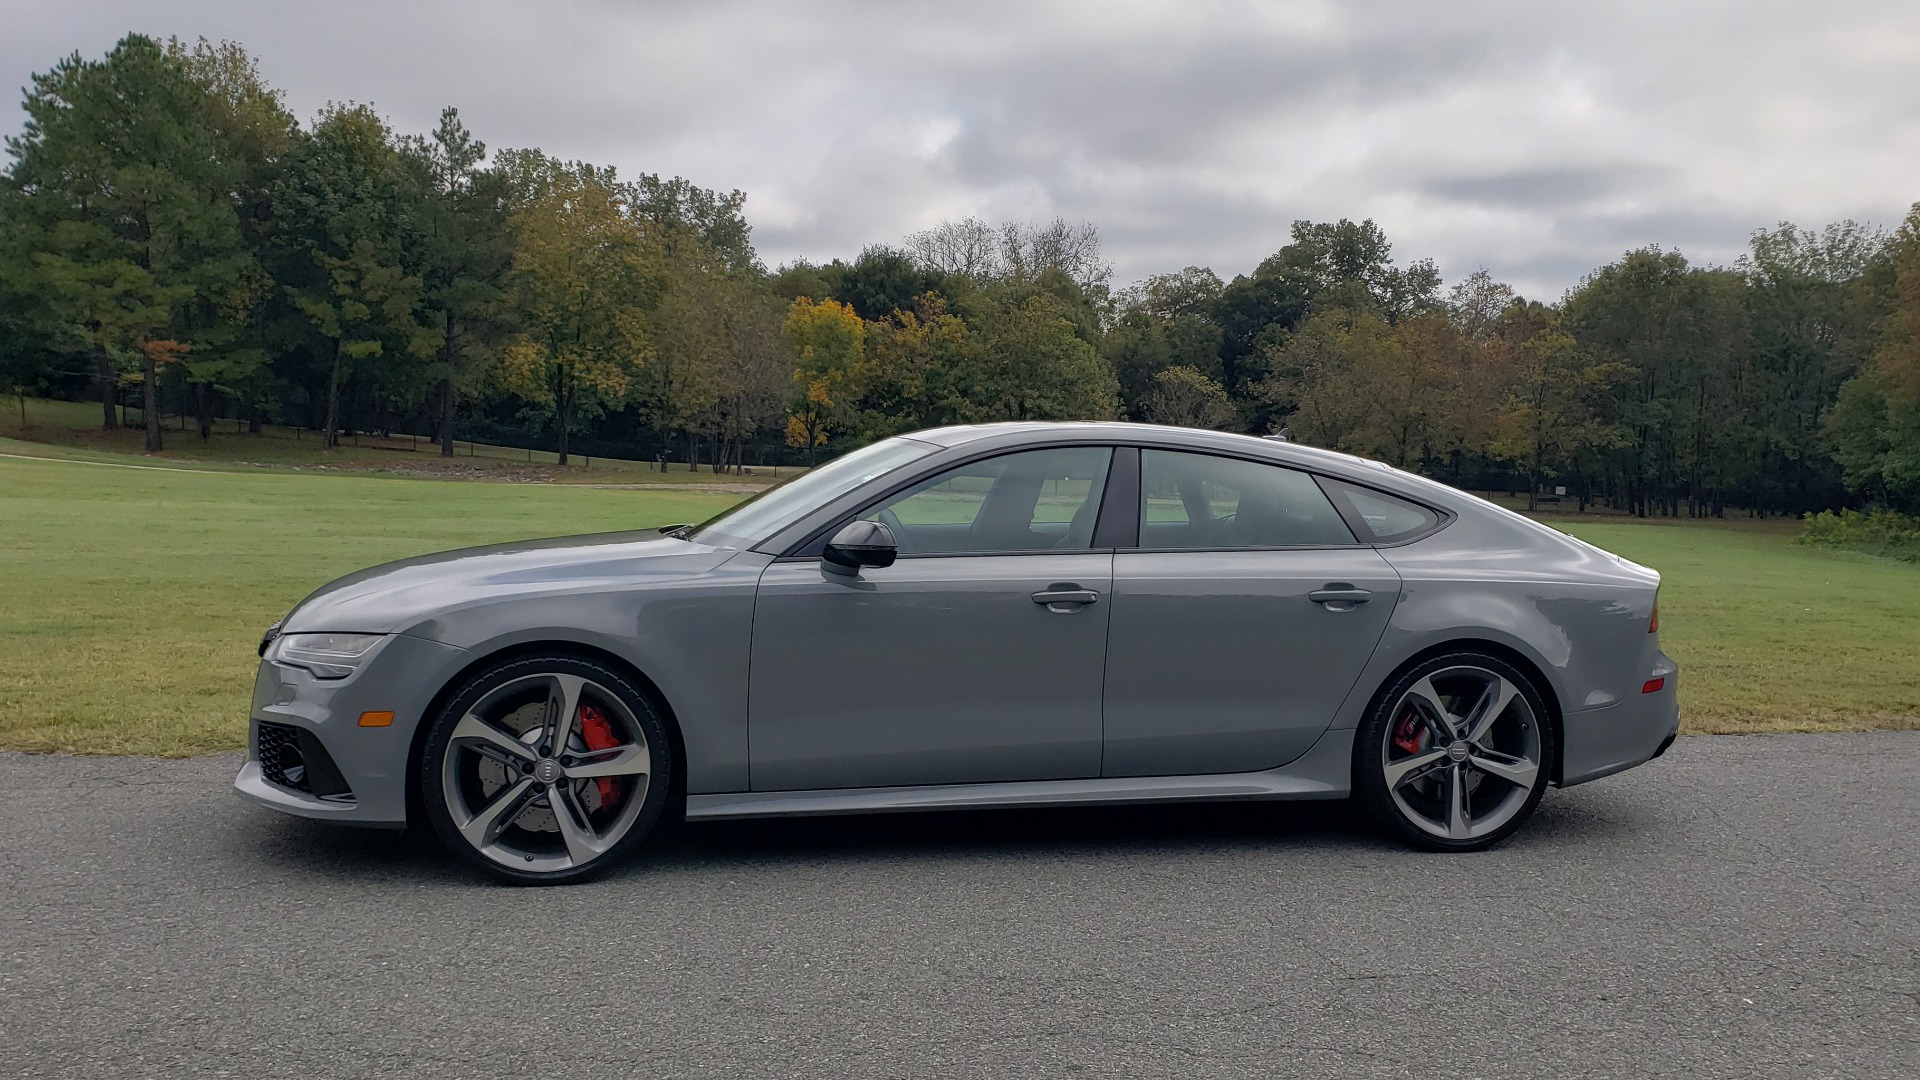 Used 2018 Audi RS 7 4.0T TIPTRONIC / CARBON OPTIC / DRVR ASST / NAV / REARVIEW / 750HP+ for sale Sold at Formula Imports in Charlotte NC 28227 7